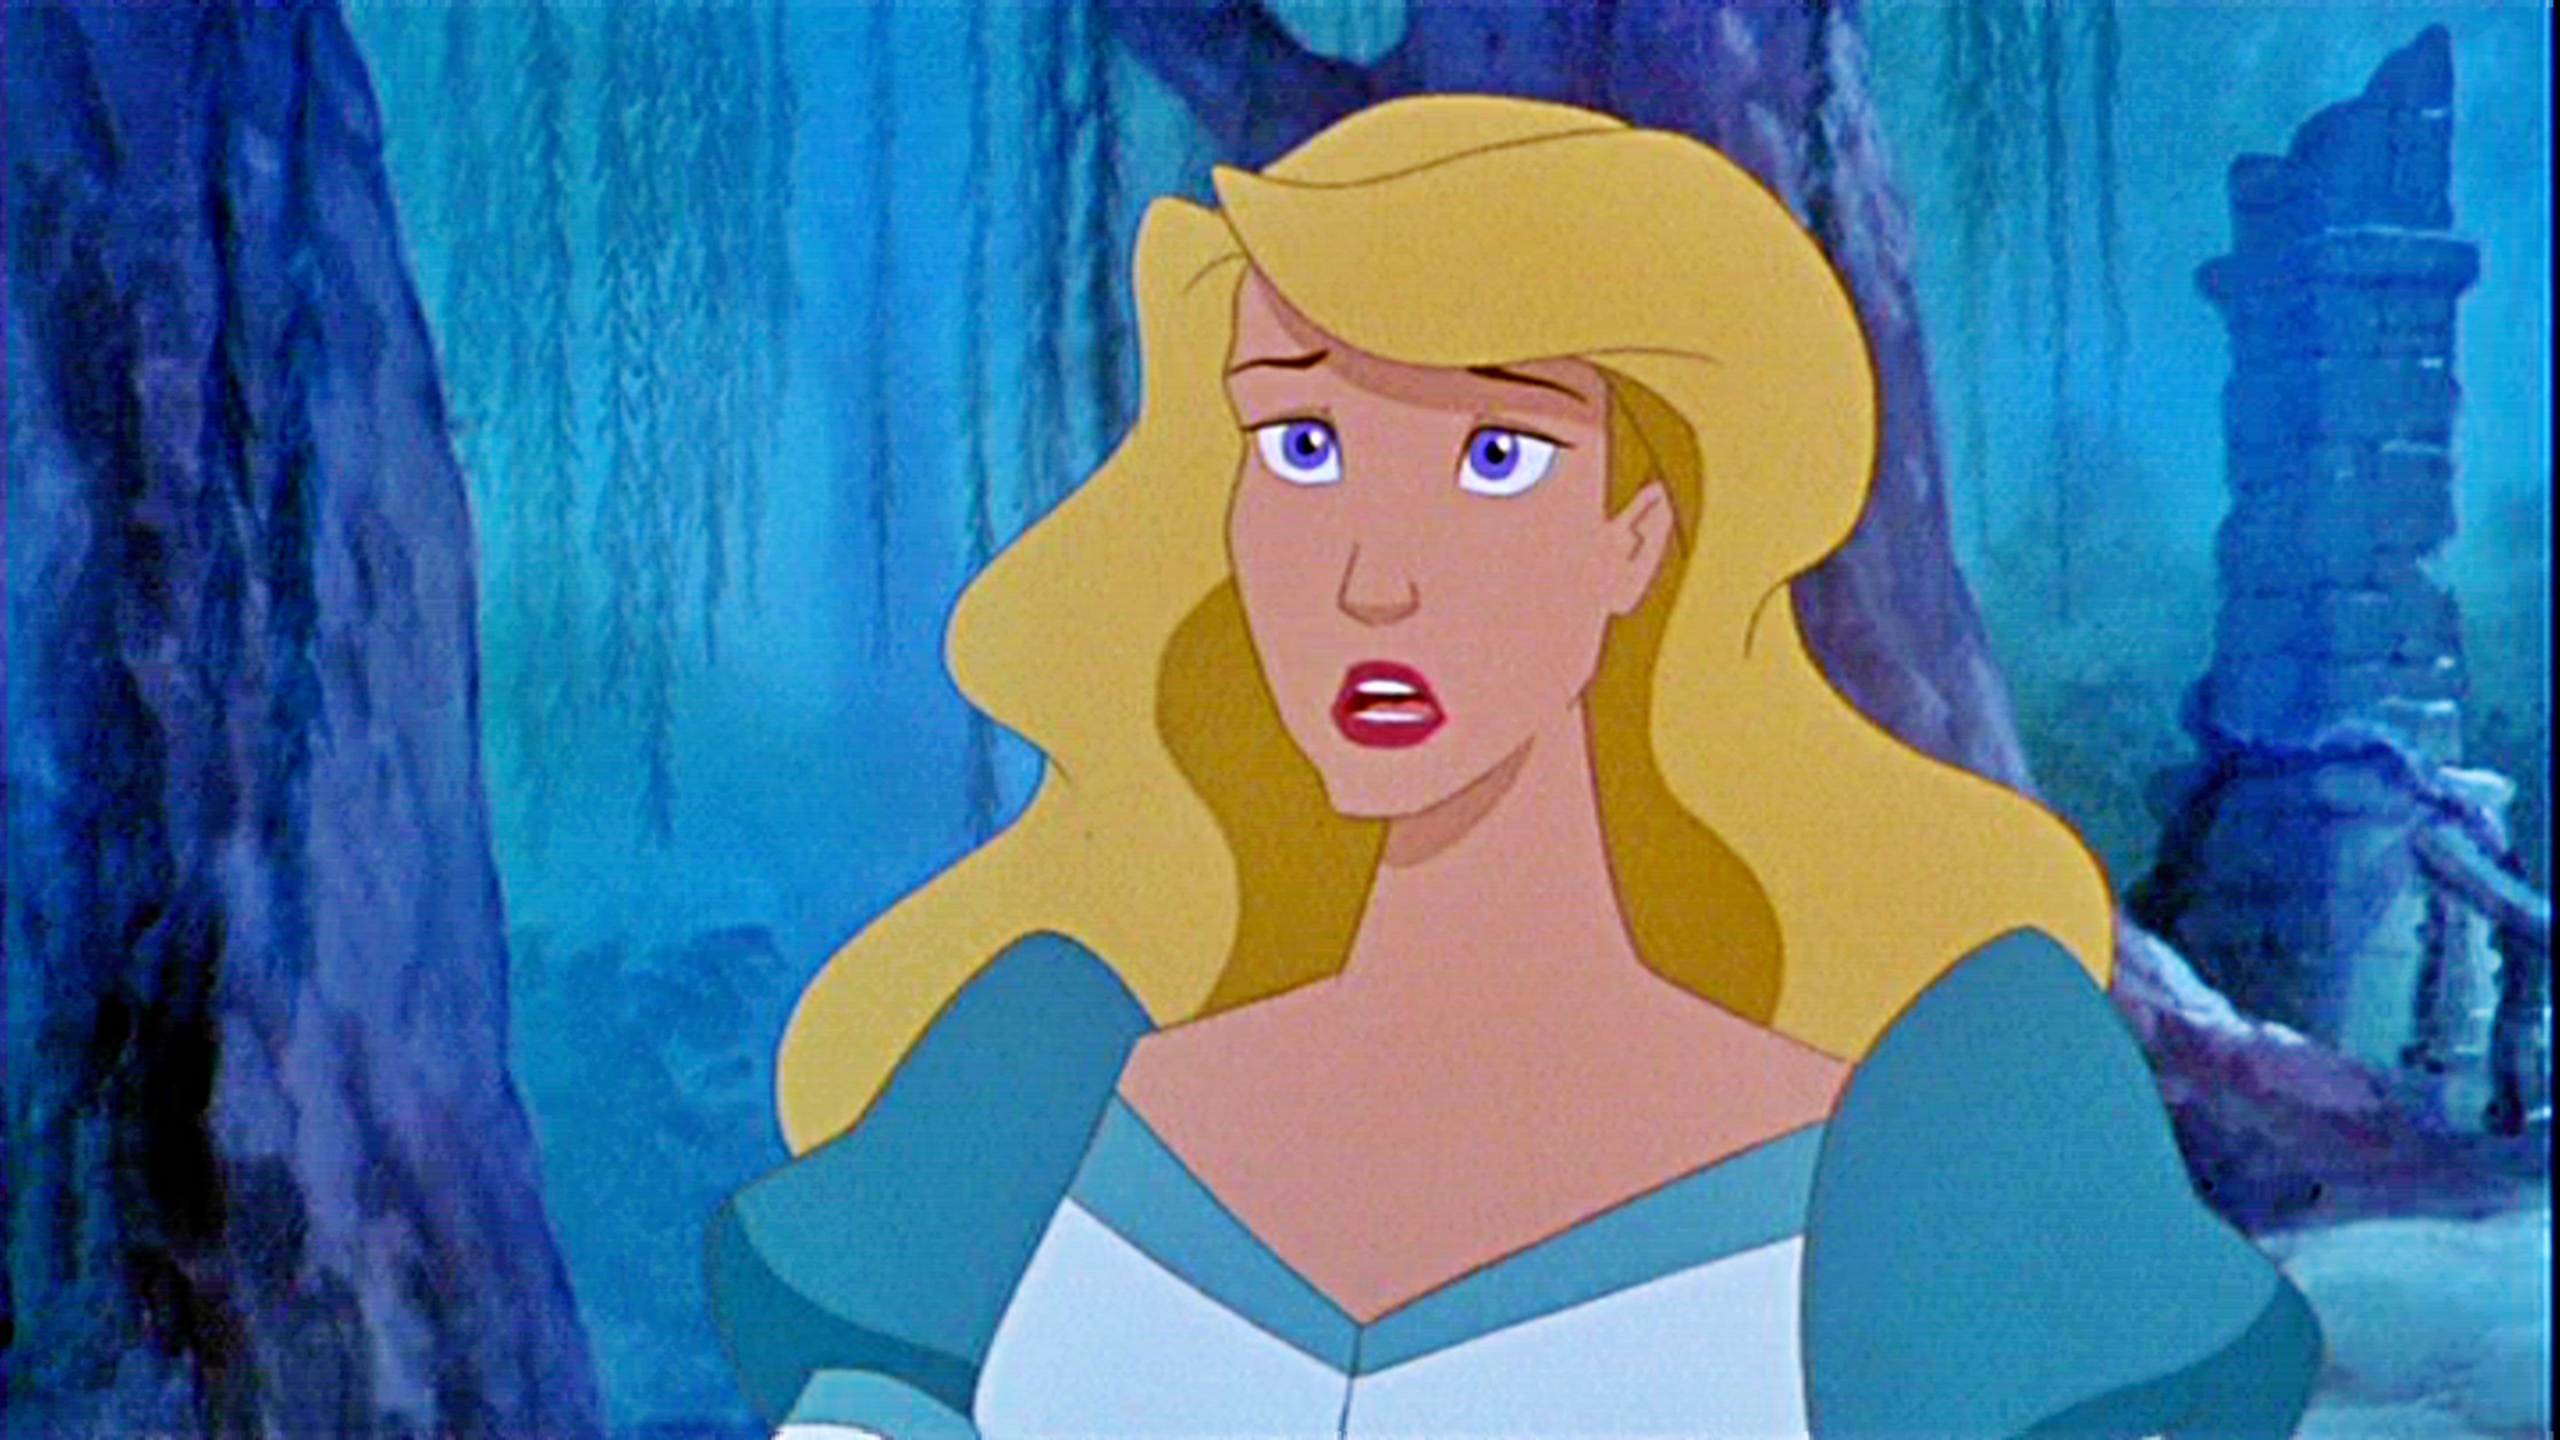 Animated Movies The Swan Princess - OdettePrincess Odette